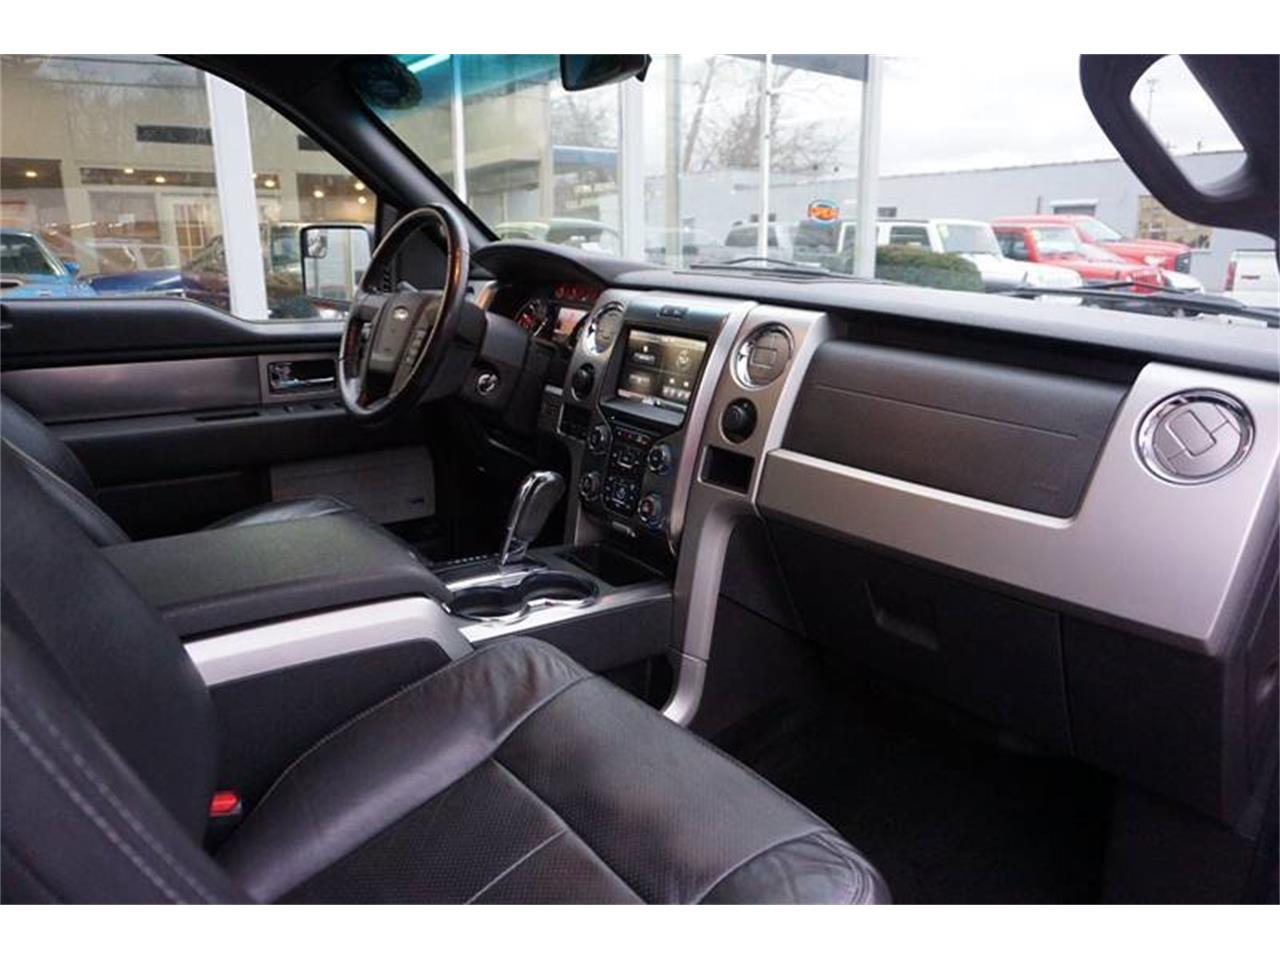 Large Picture of 2013 Ford F150 located in Ohio - $26,825.00 Offered by Cincinnati Auto Wholesale - MODL